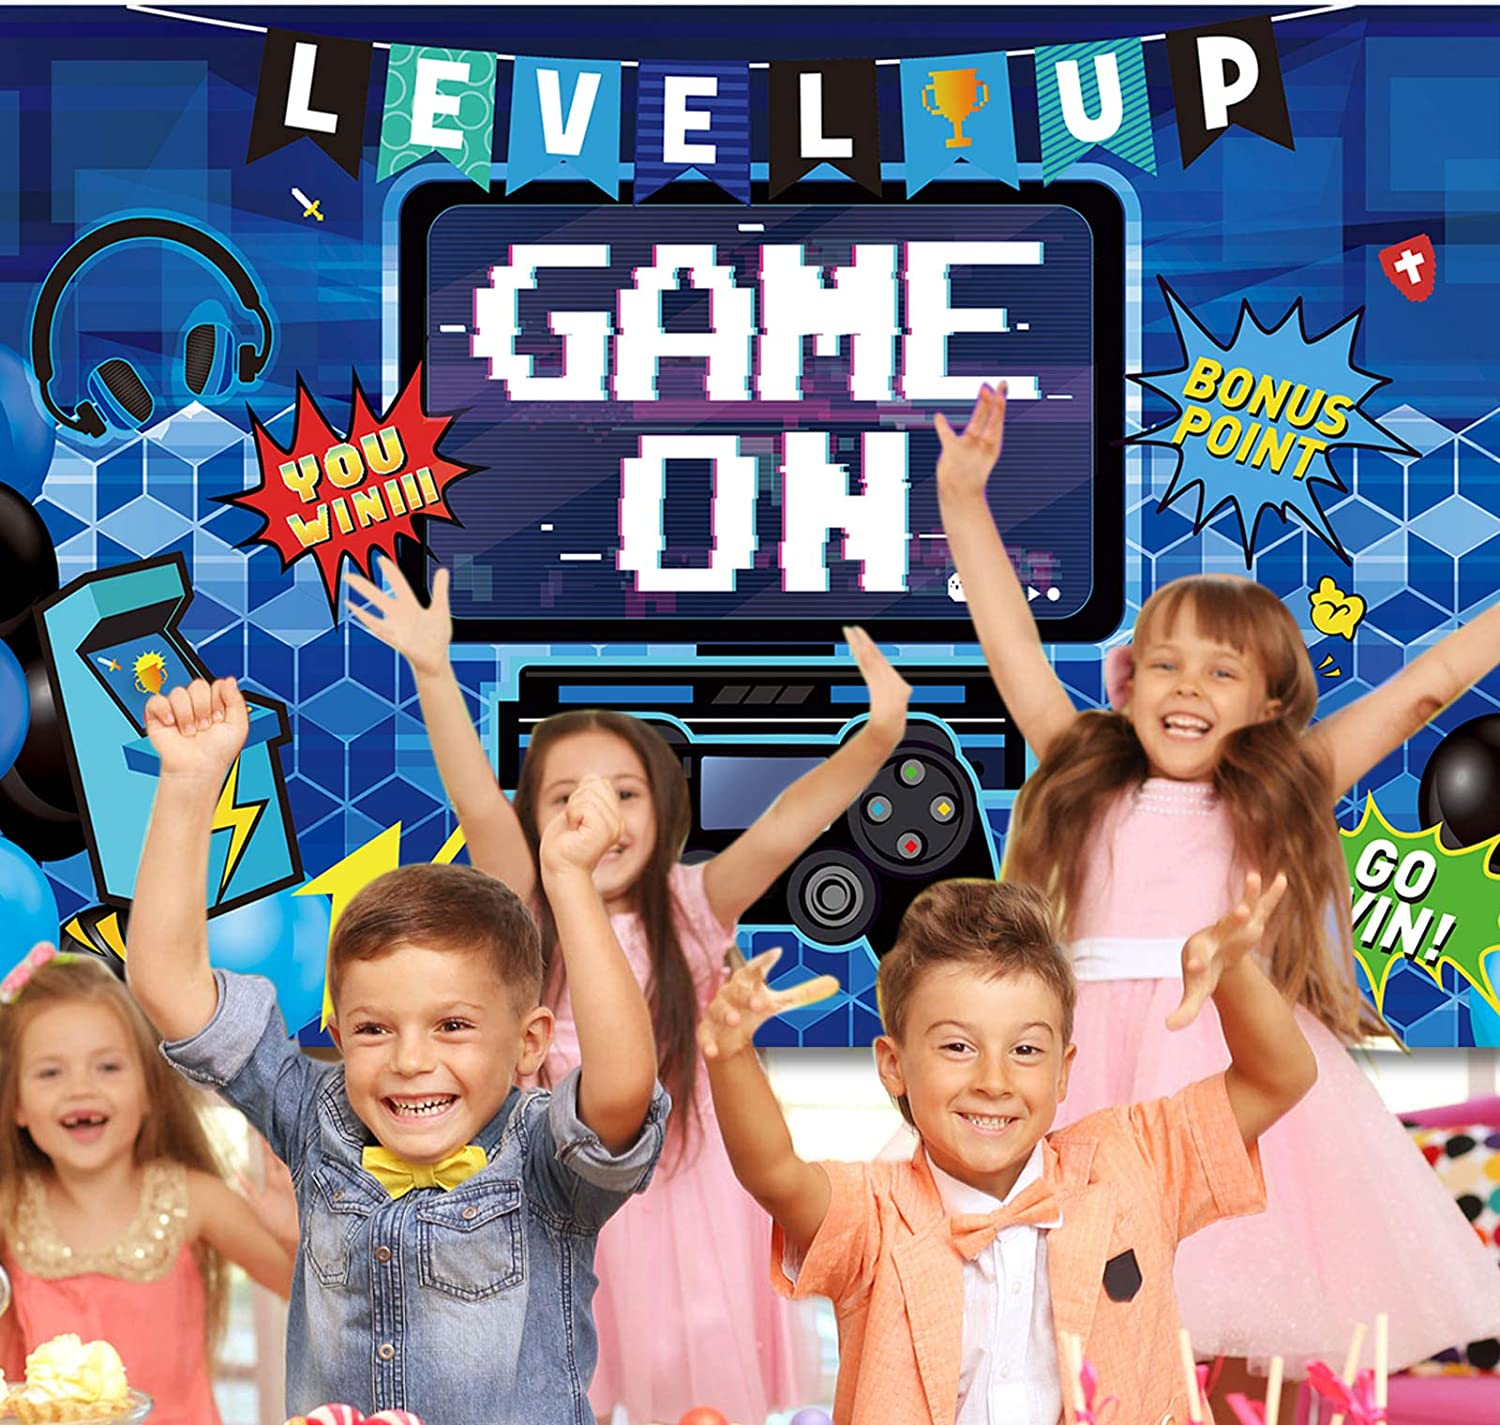 70.9 x 43.3 Inch Video Game Party Decoration Video Gaming Photo Backdrop Background Birthday Photo Banner Gamer Room Decor for Game Fans Video Gamer Party Decoration Supplies